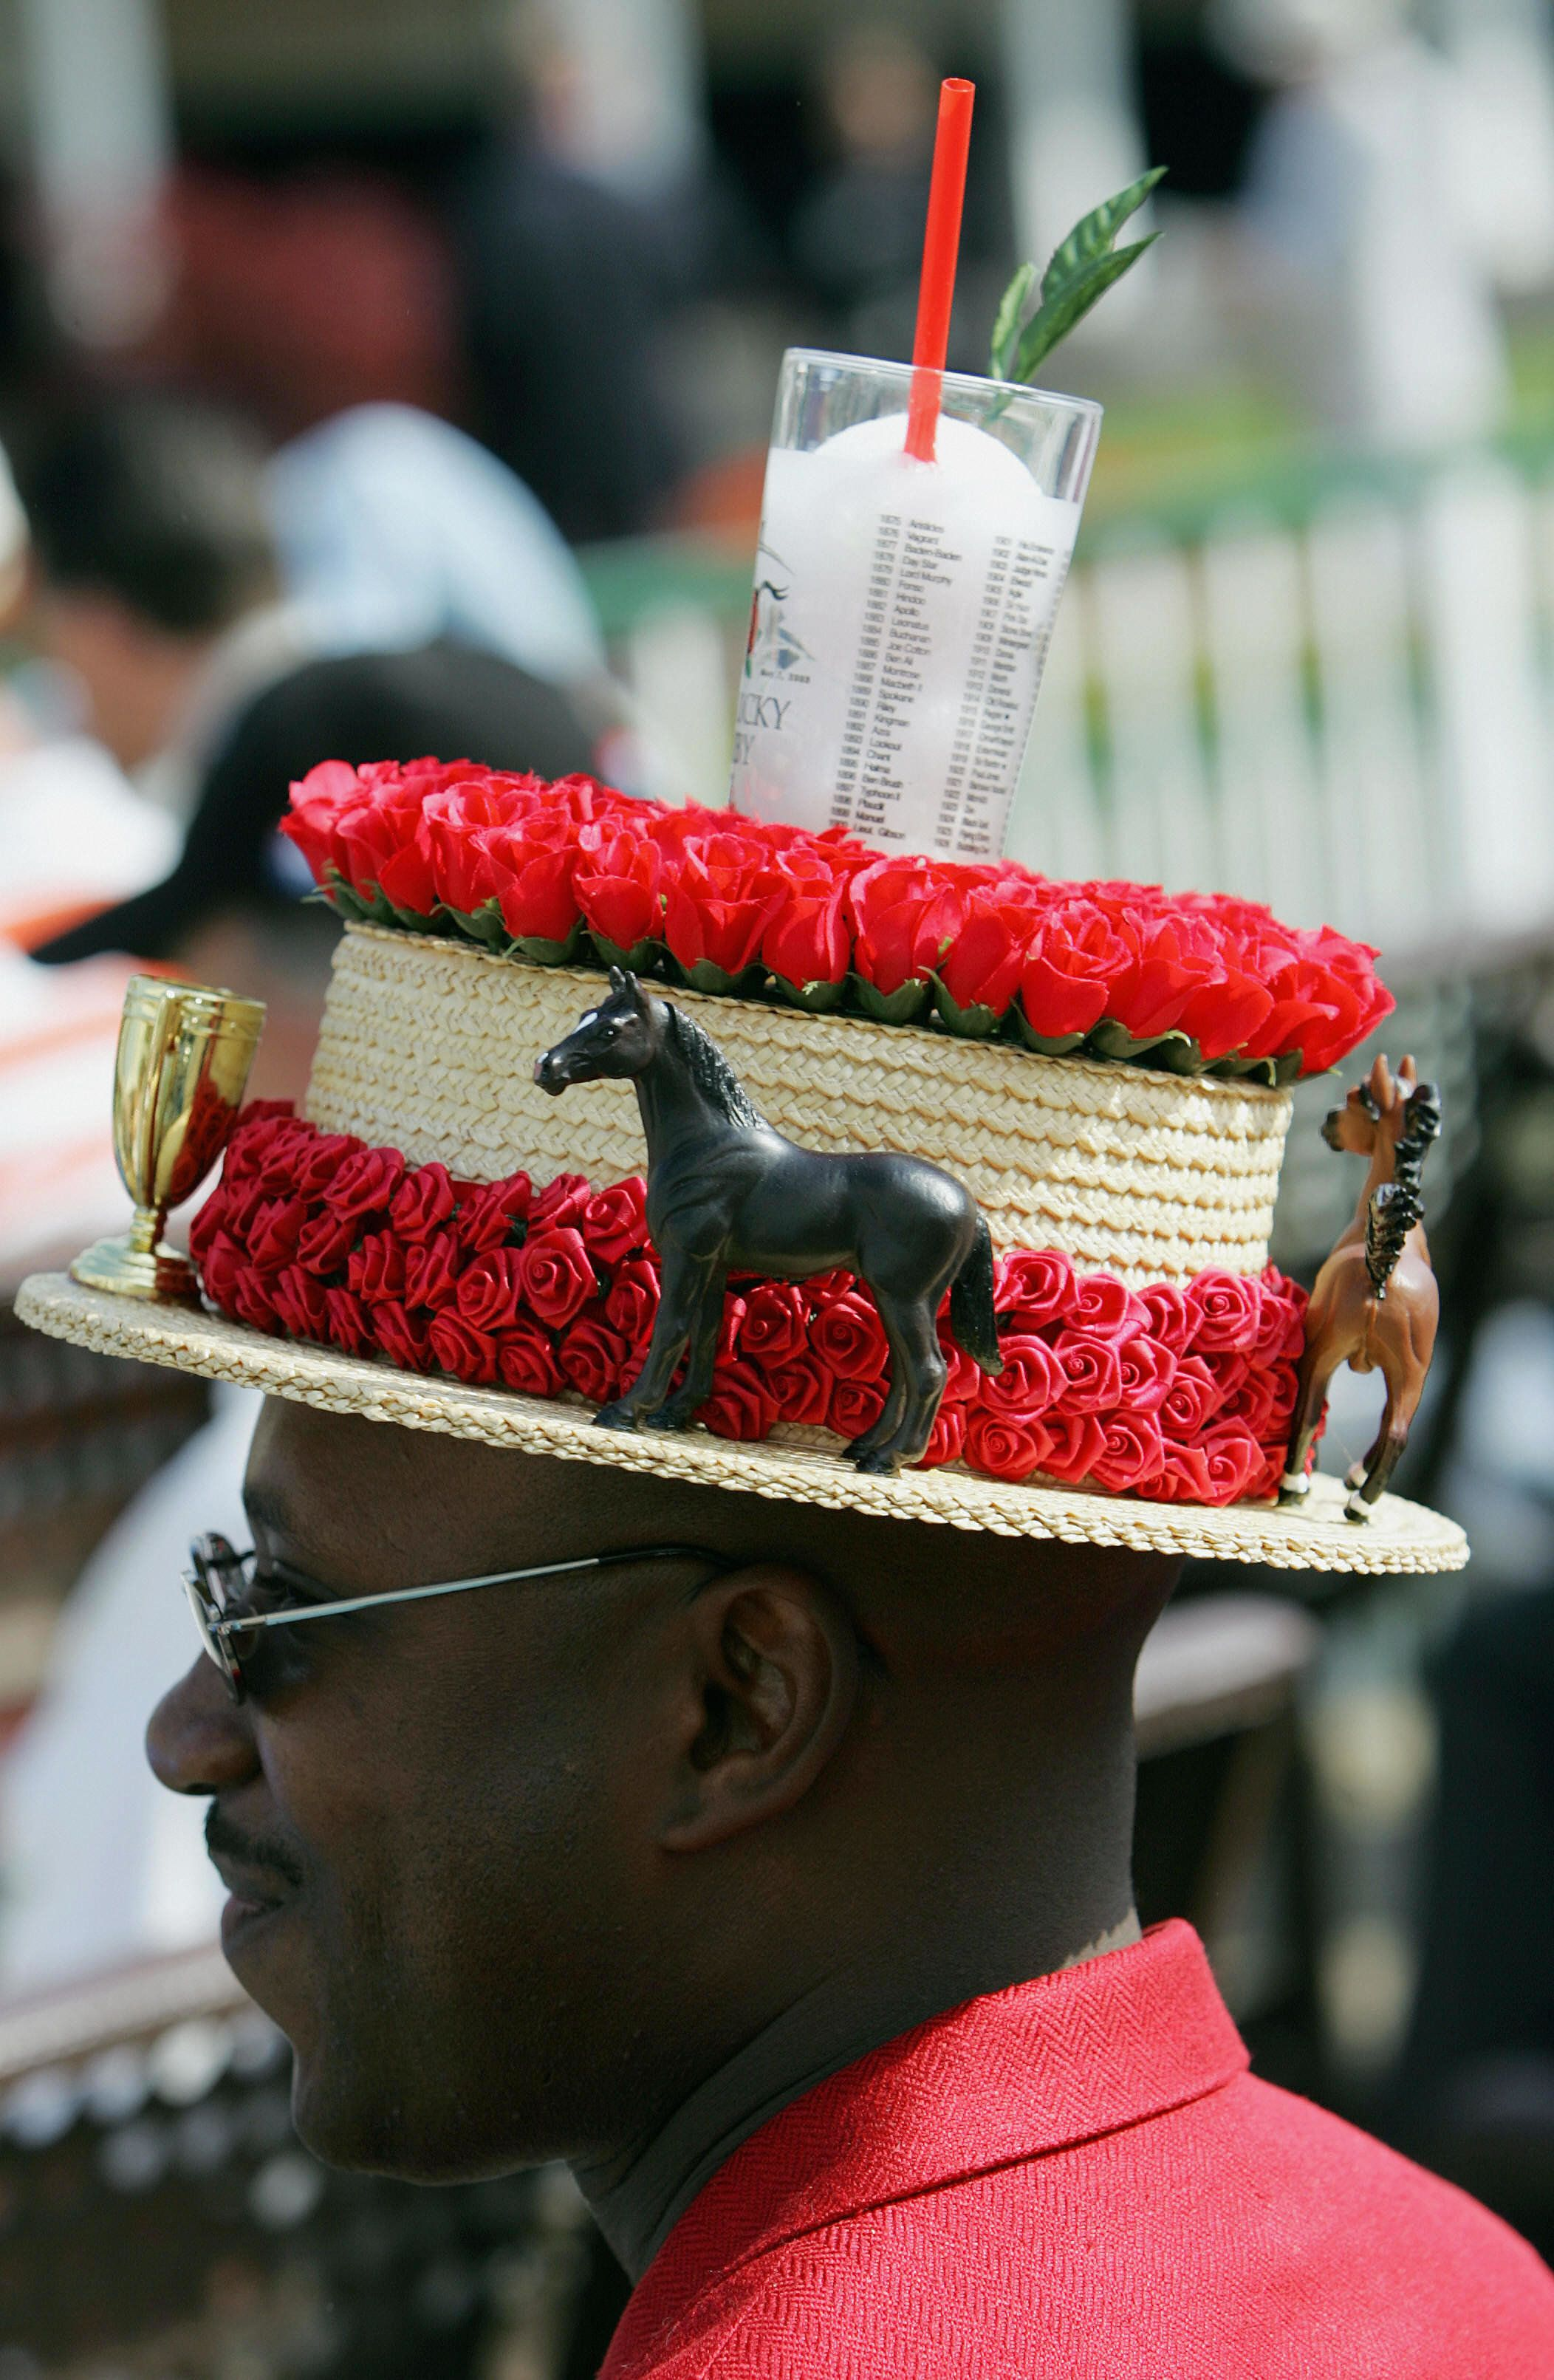 The classic mint julep glass sits atop a derby hat worn by a race fan in 2005.